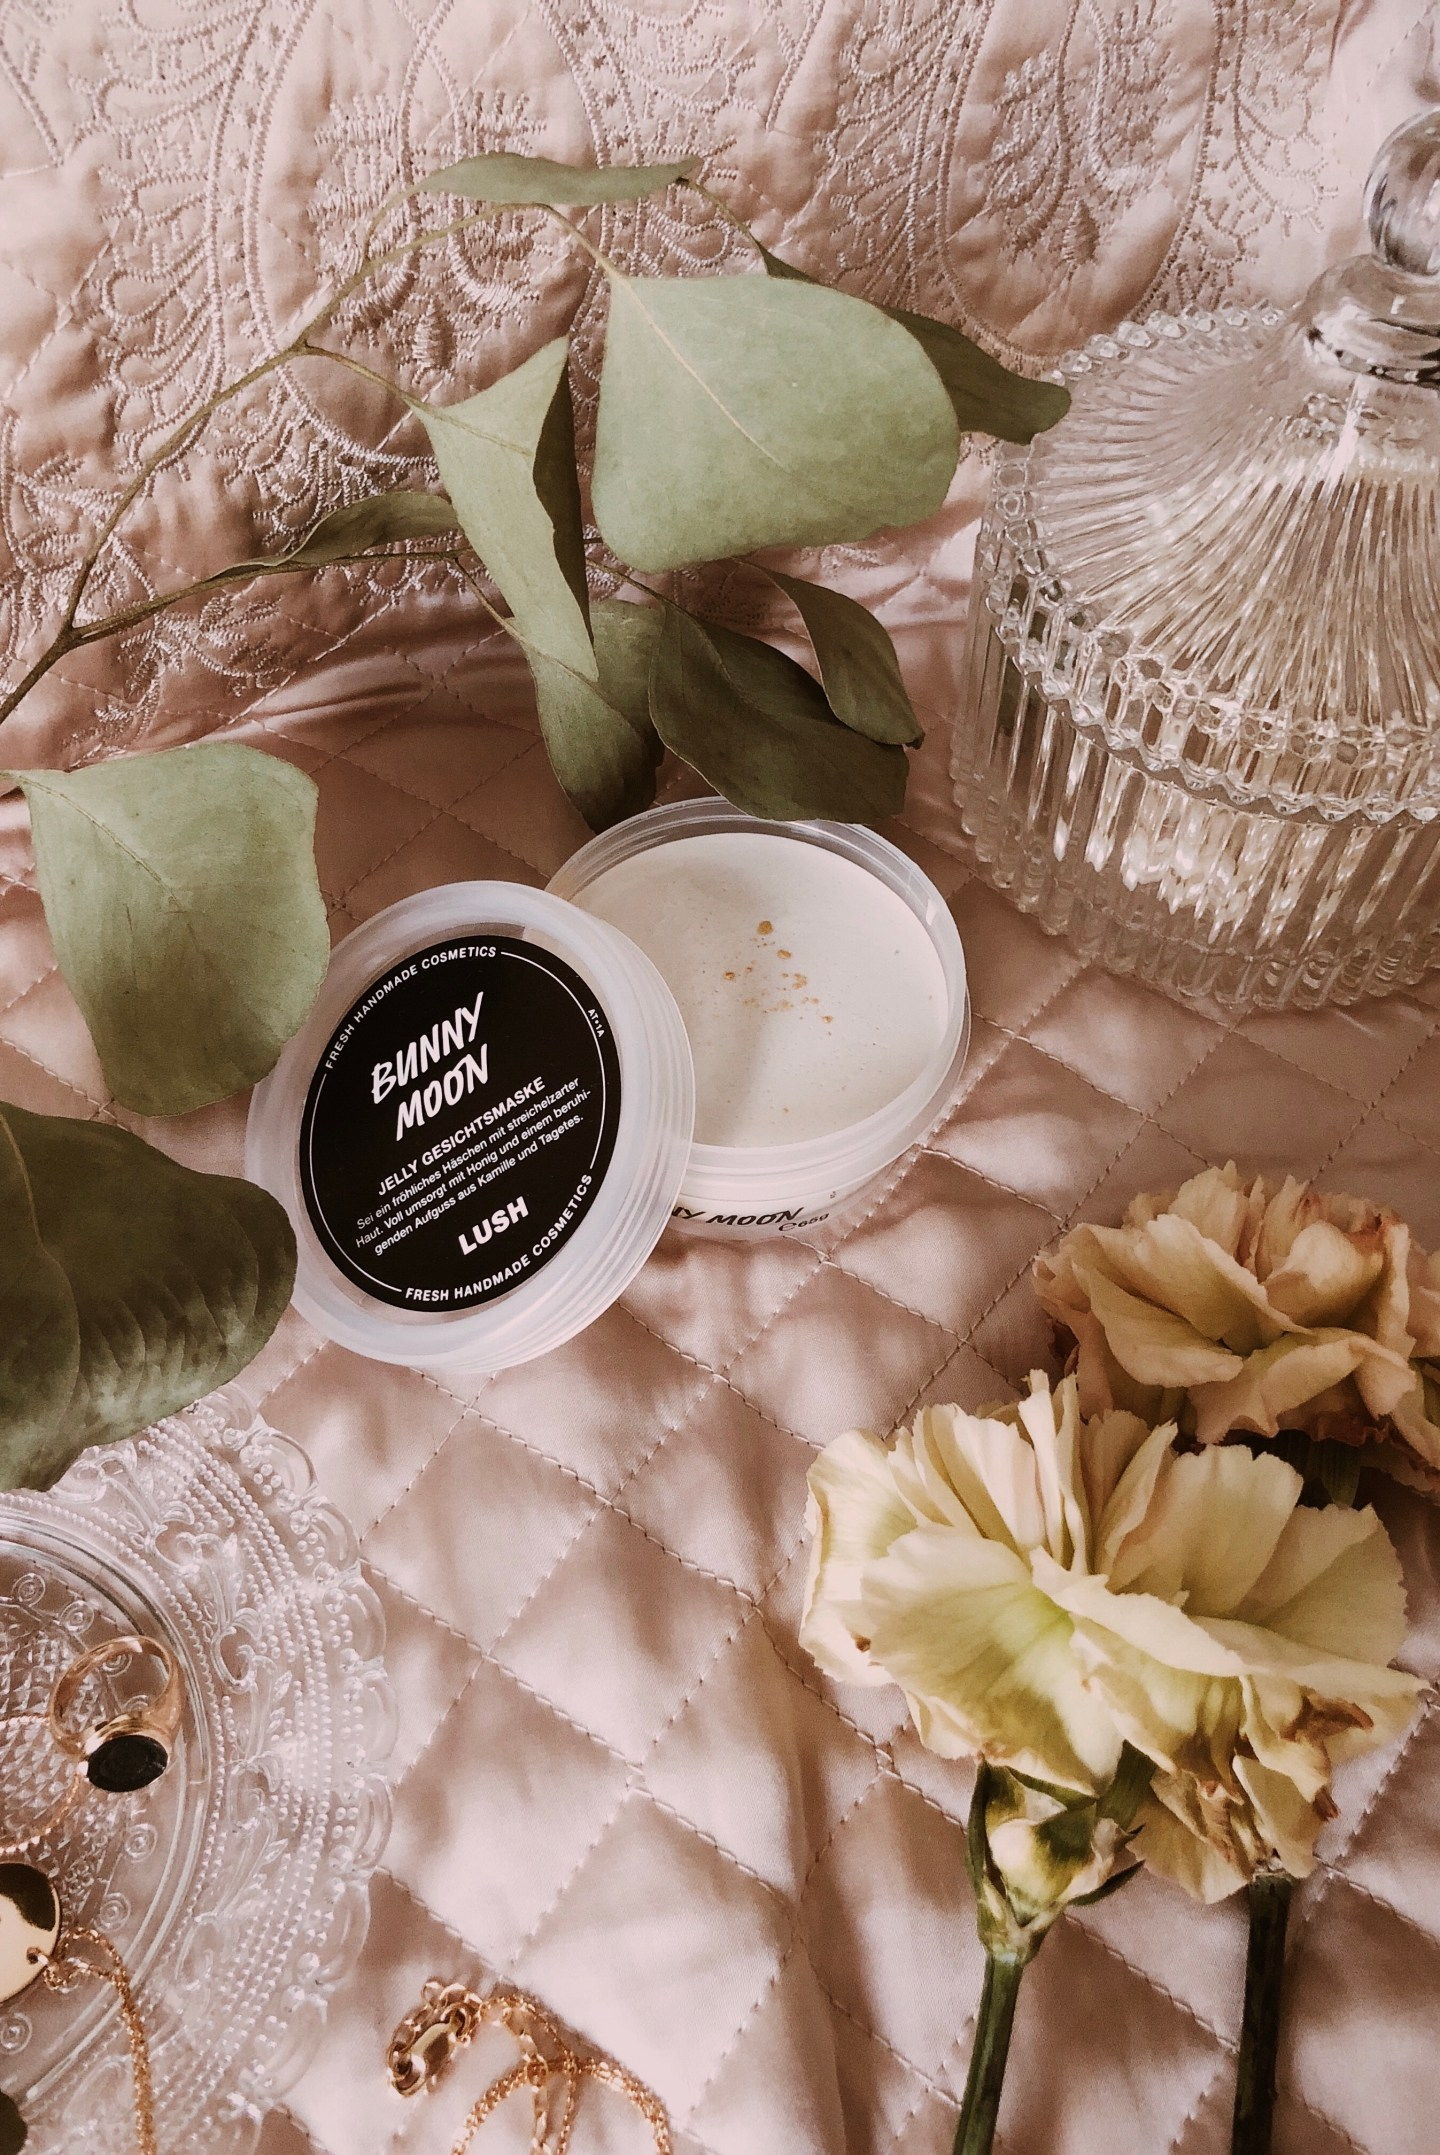 Lush Cosmetics: Bunny Moon Jelly Face Mask